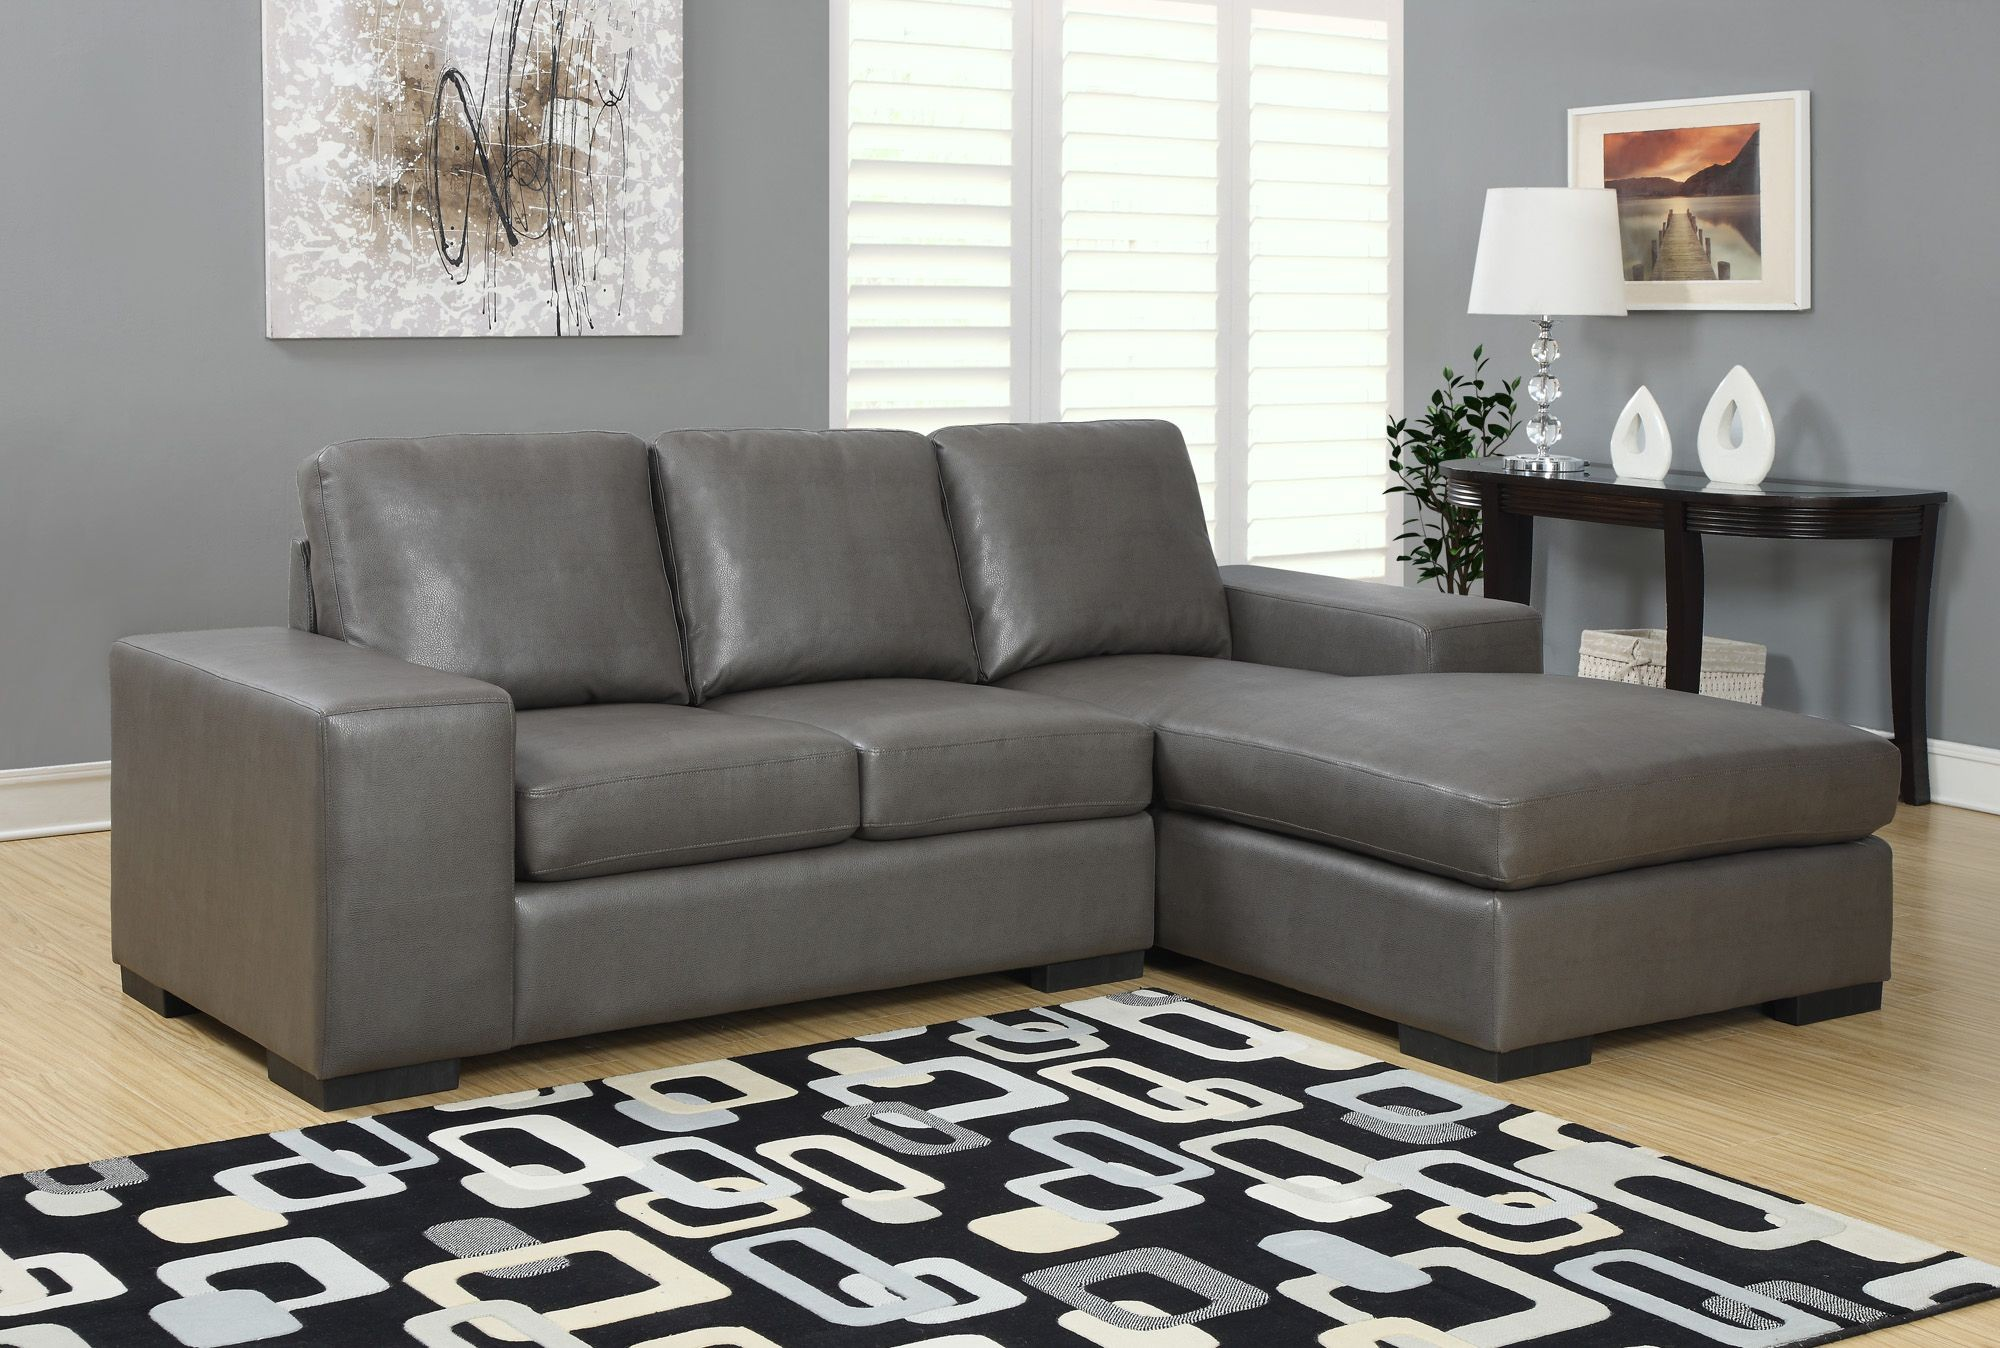 charcoal gray bonded leather match sofa sectional from monarch 8200gy coleman furniture. Black Bedroom Furniture Sets. Home Design Ideas